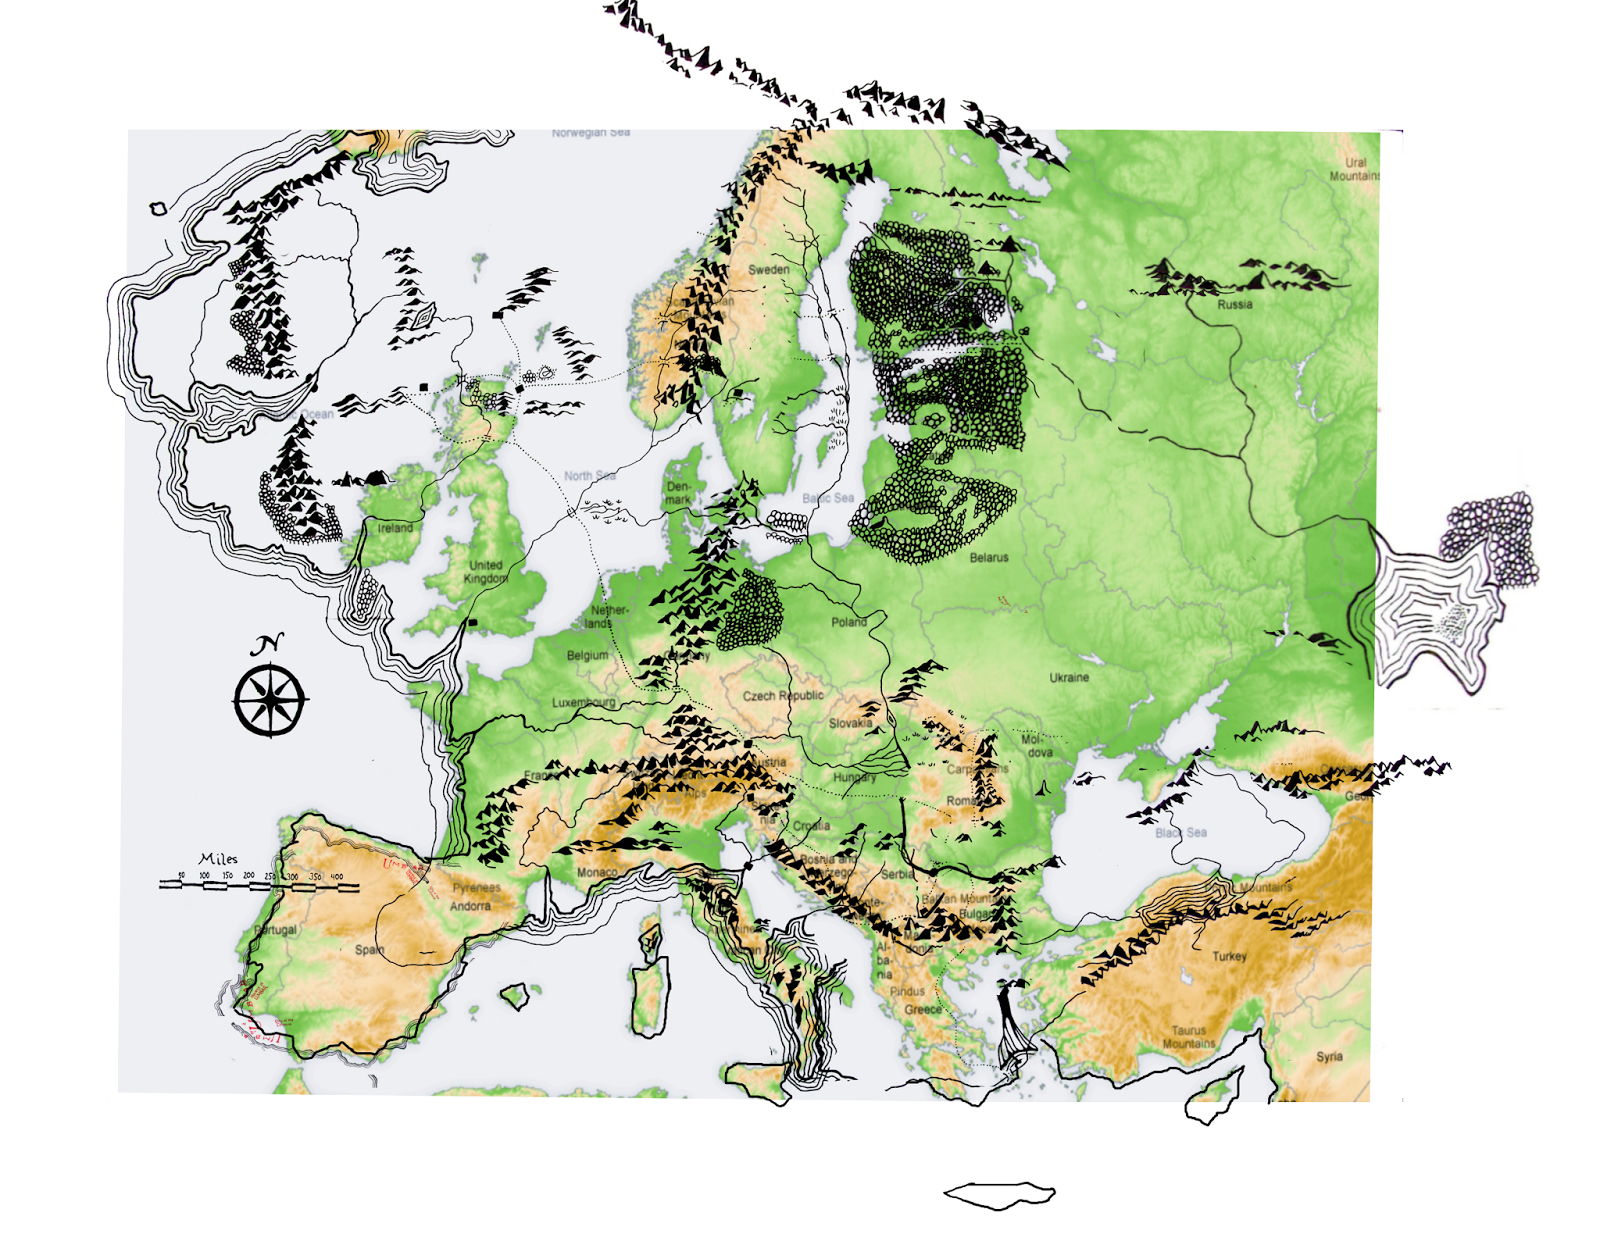 it can be though quite easily shown oh yeah that their size corresponds quite exactly the size of the mountains still missing in the modern european map